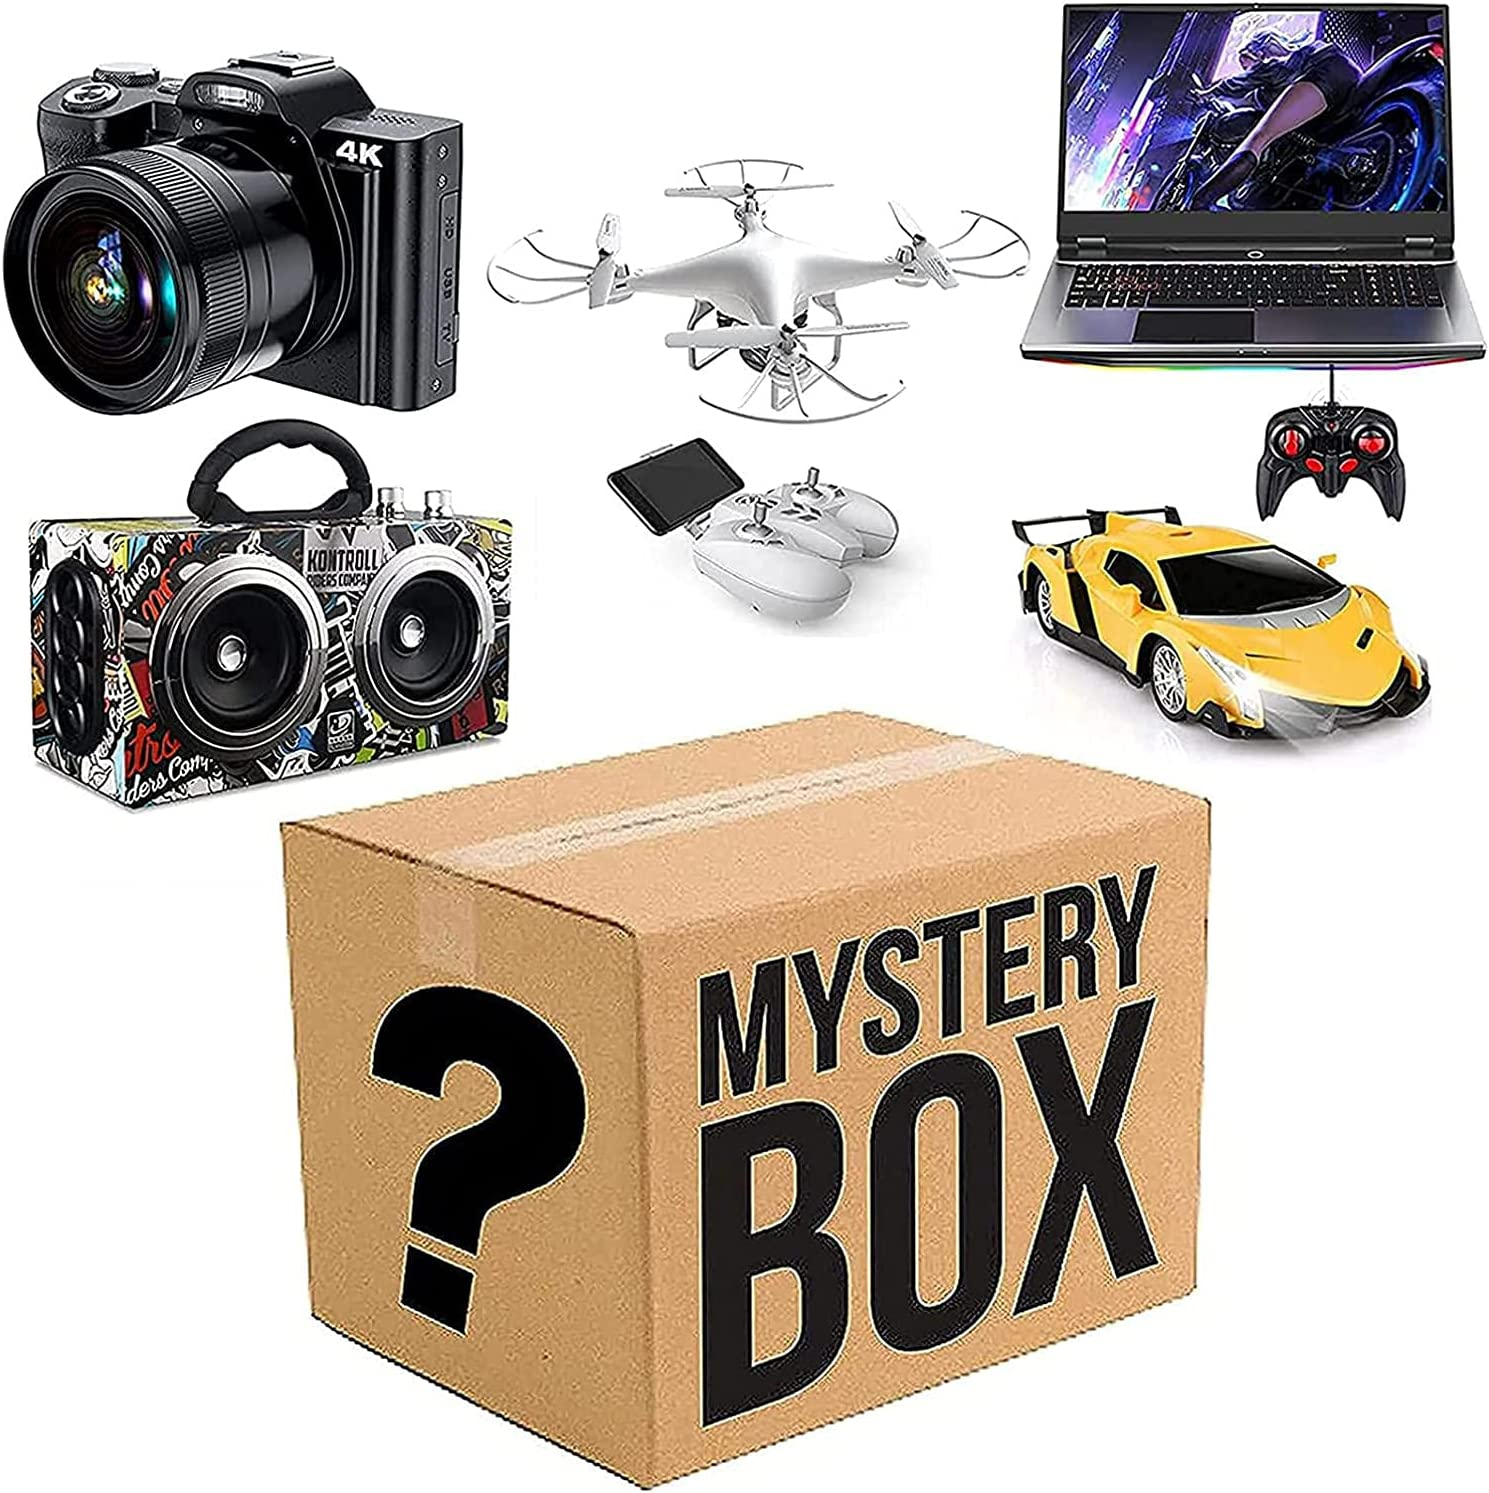 Mystery Box Boxes Super beauty product restock quality top Random Electronic Lucky Time sale Surprise